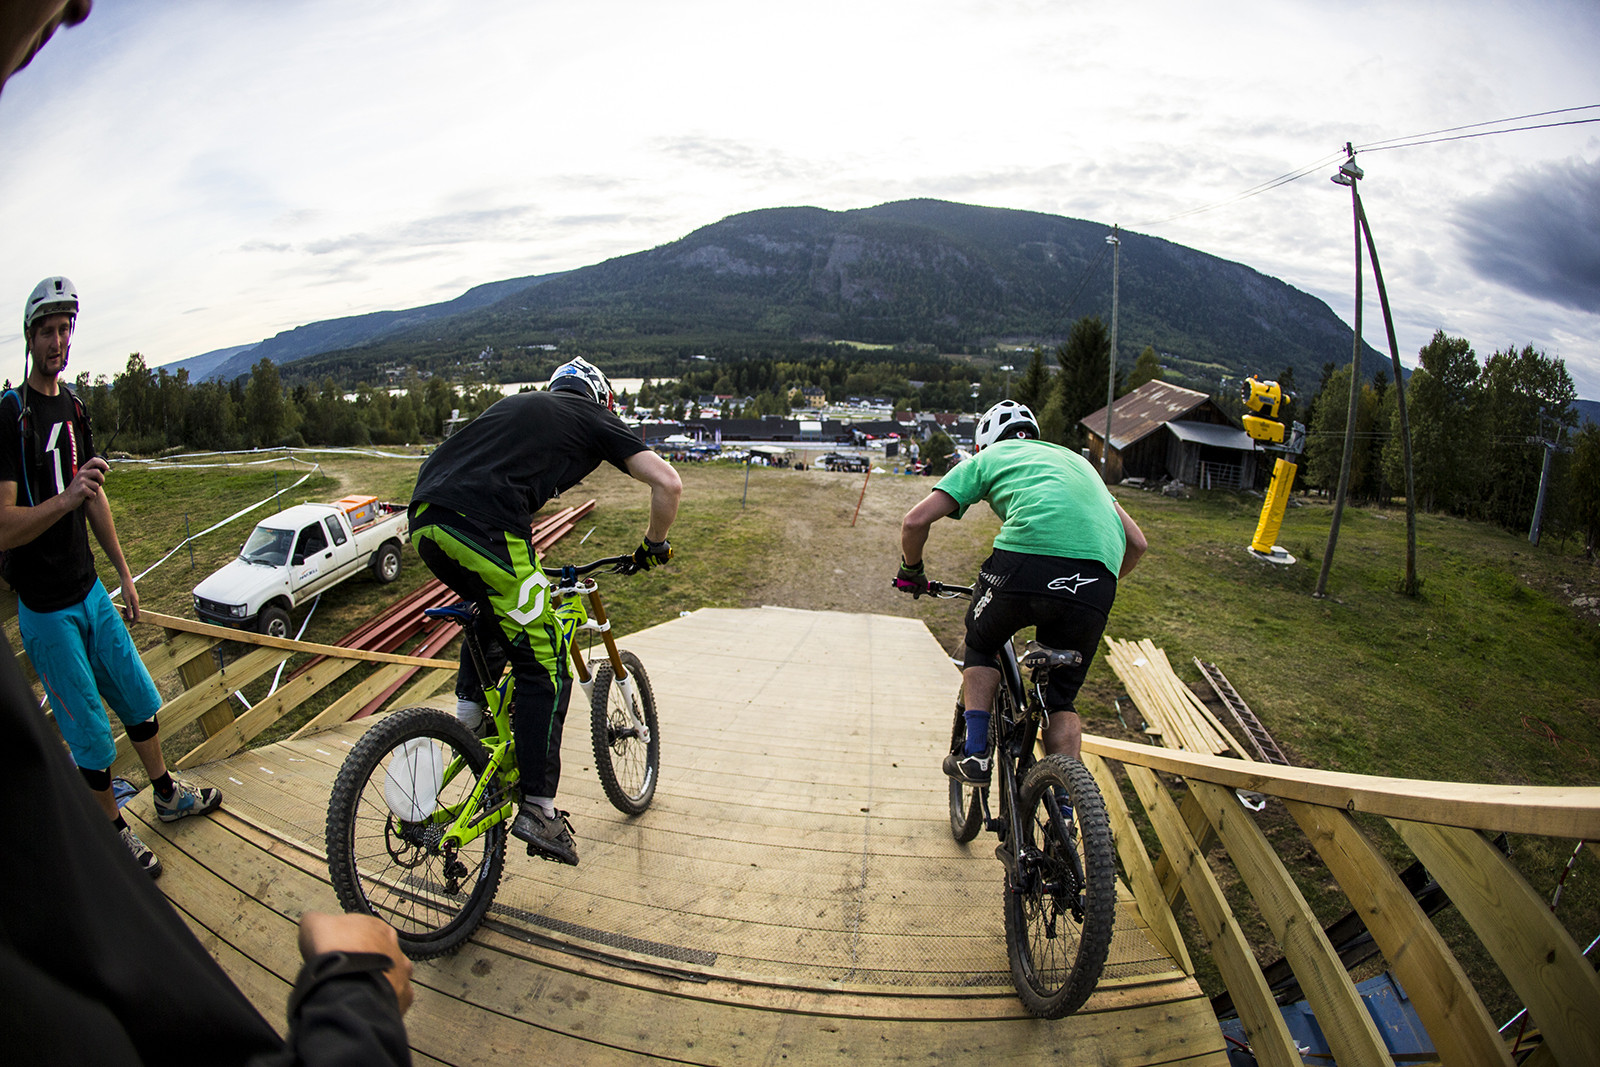 Industry World Champs Start Gate - Has-Beens vs. Wannabes! Industry World Champs Race at Hafjell - Mountain Biking Pictures - Vital MTB